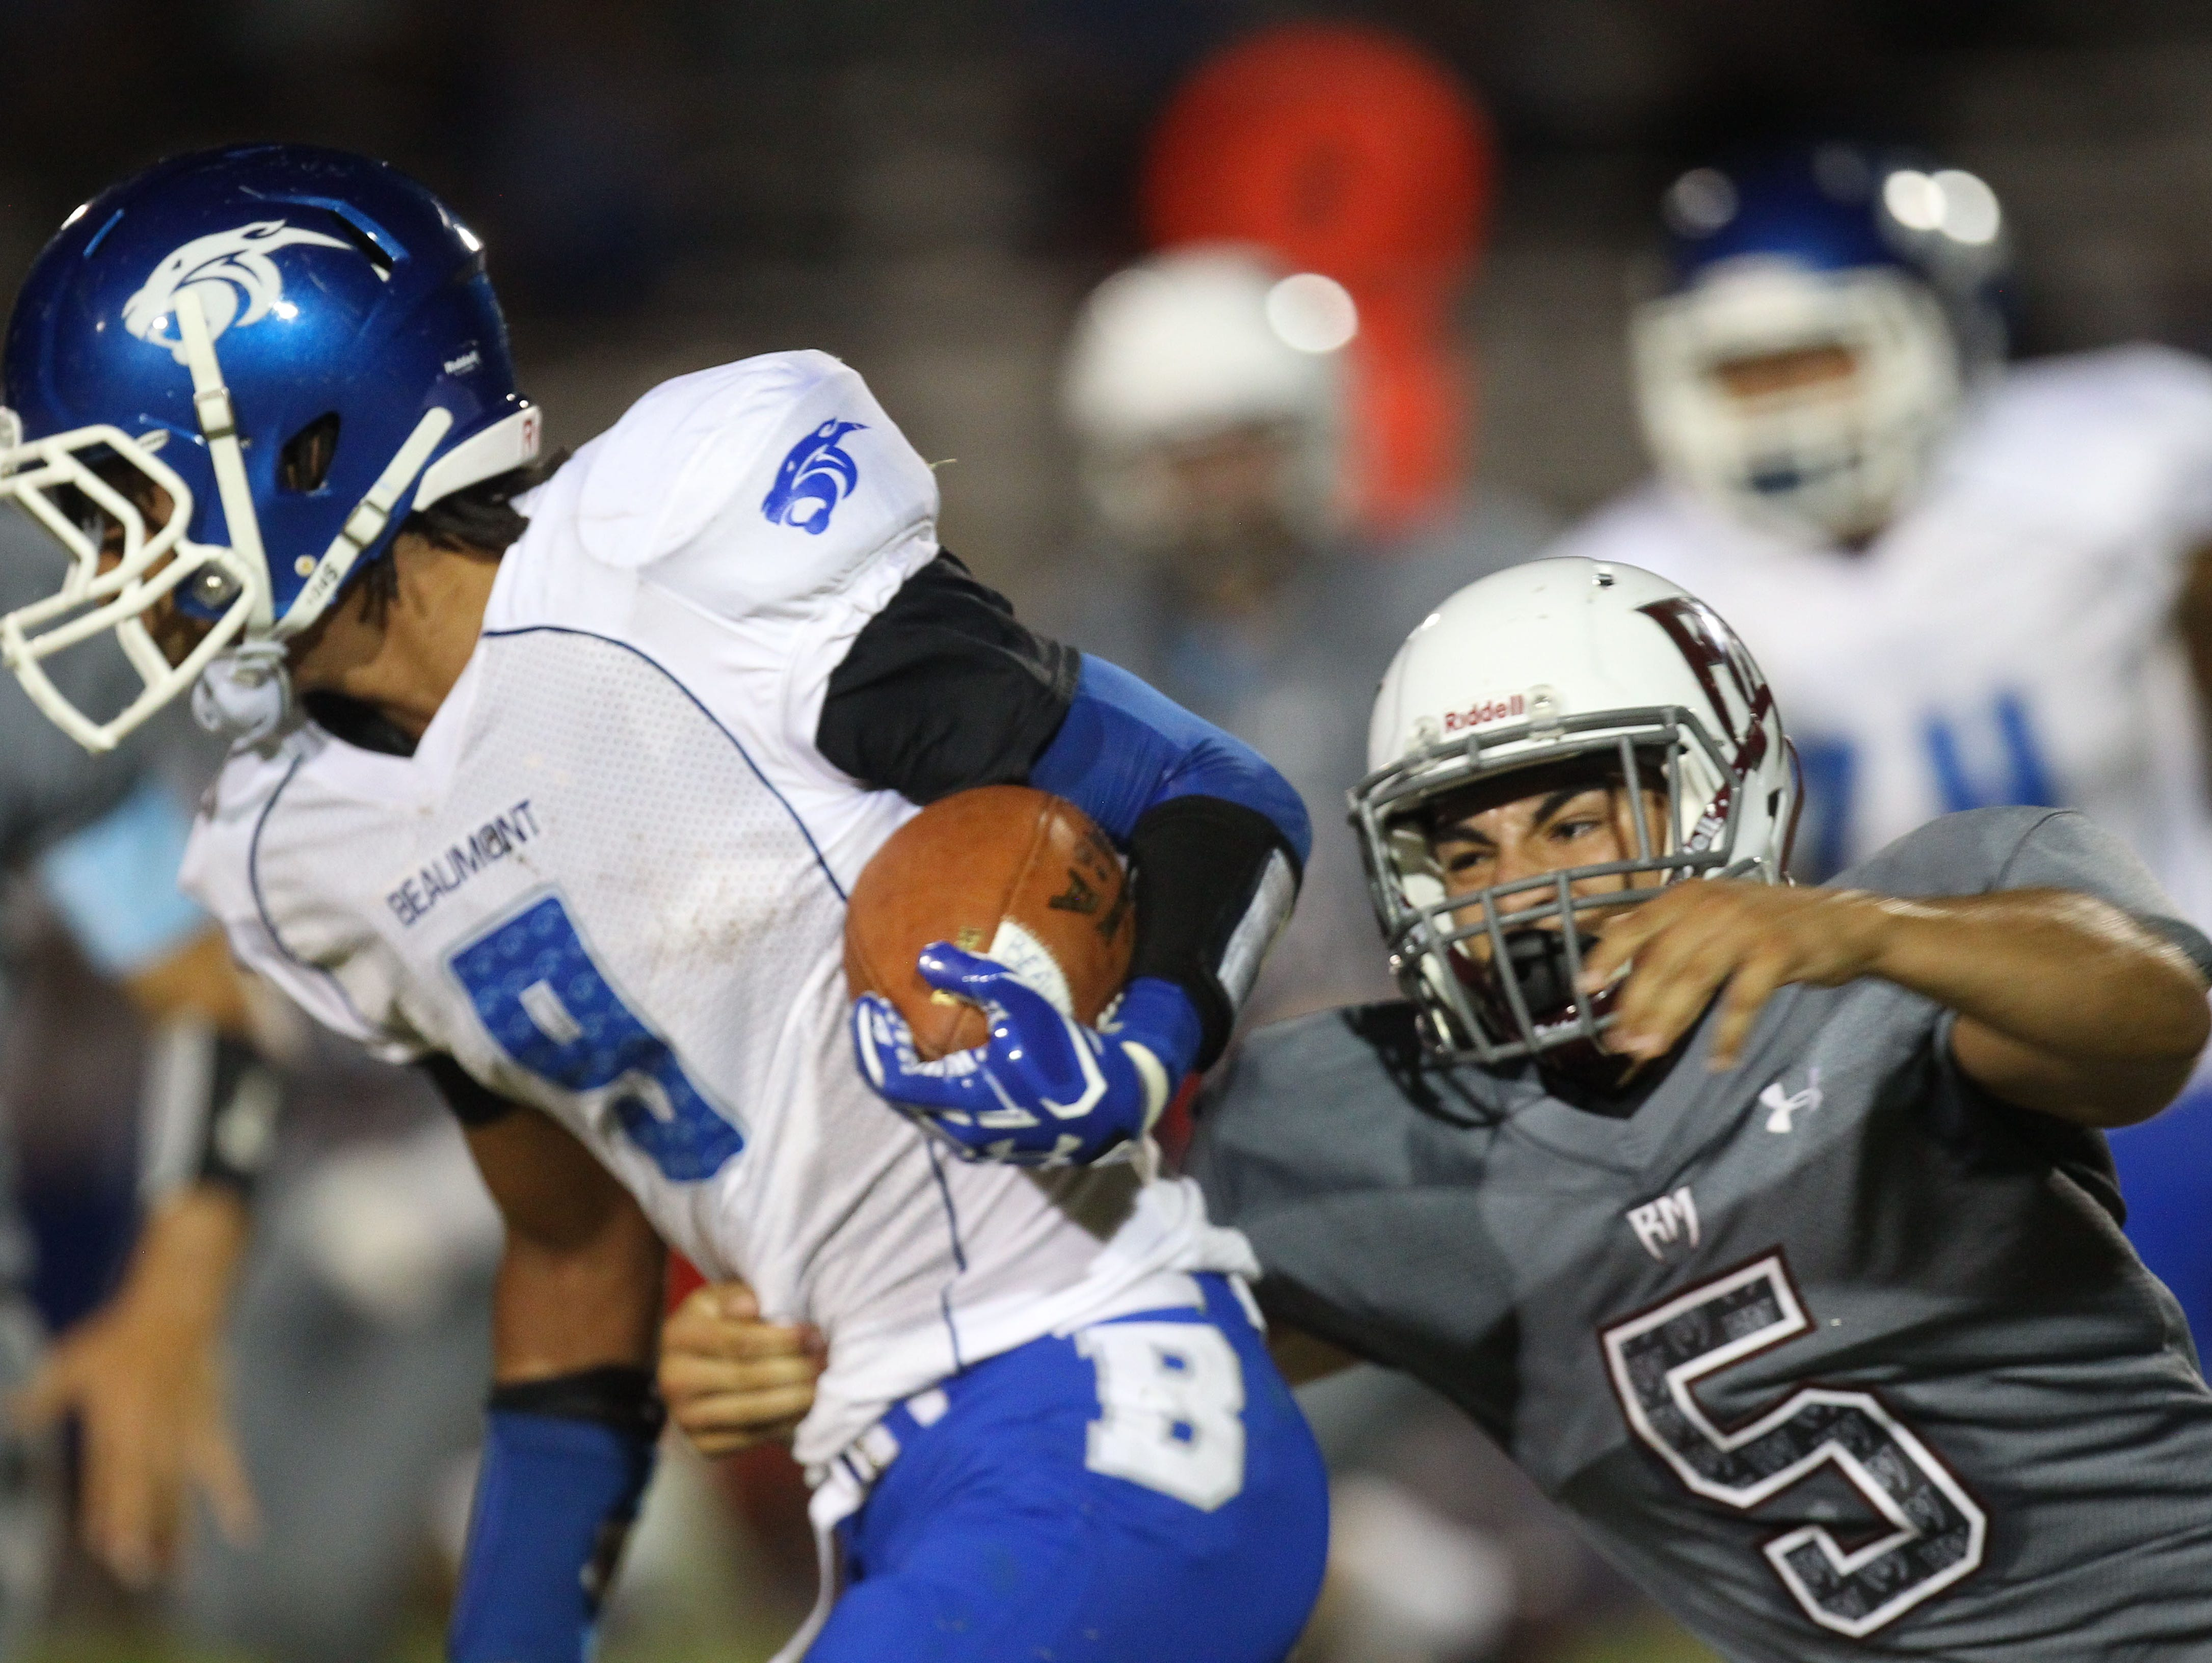 At right, Rancho Mirage High School's Michael Ramos makes a tackle in the first half of their game at home against Beaumont.